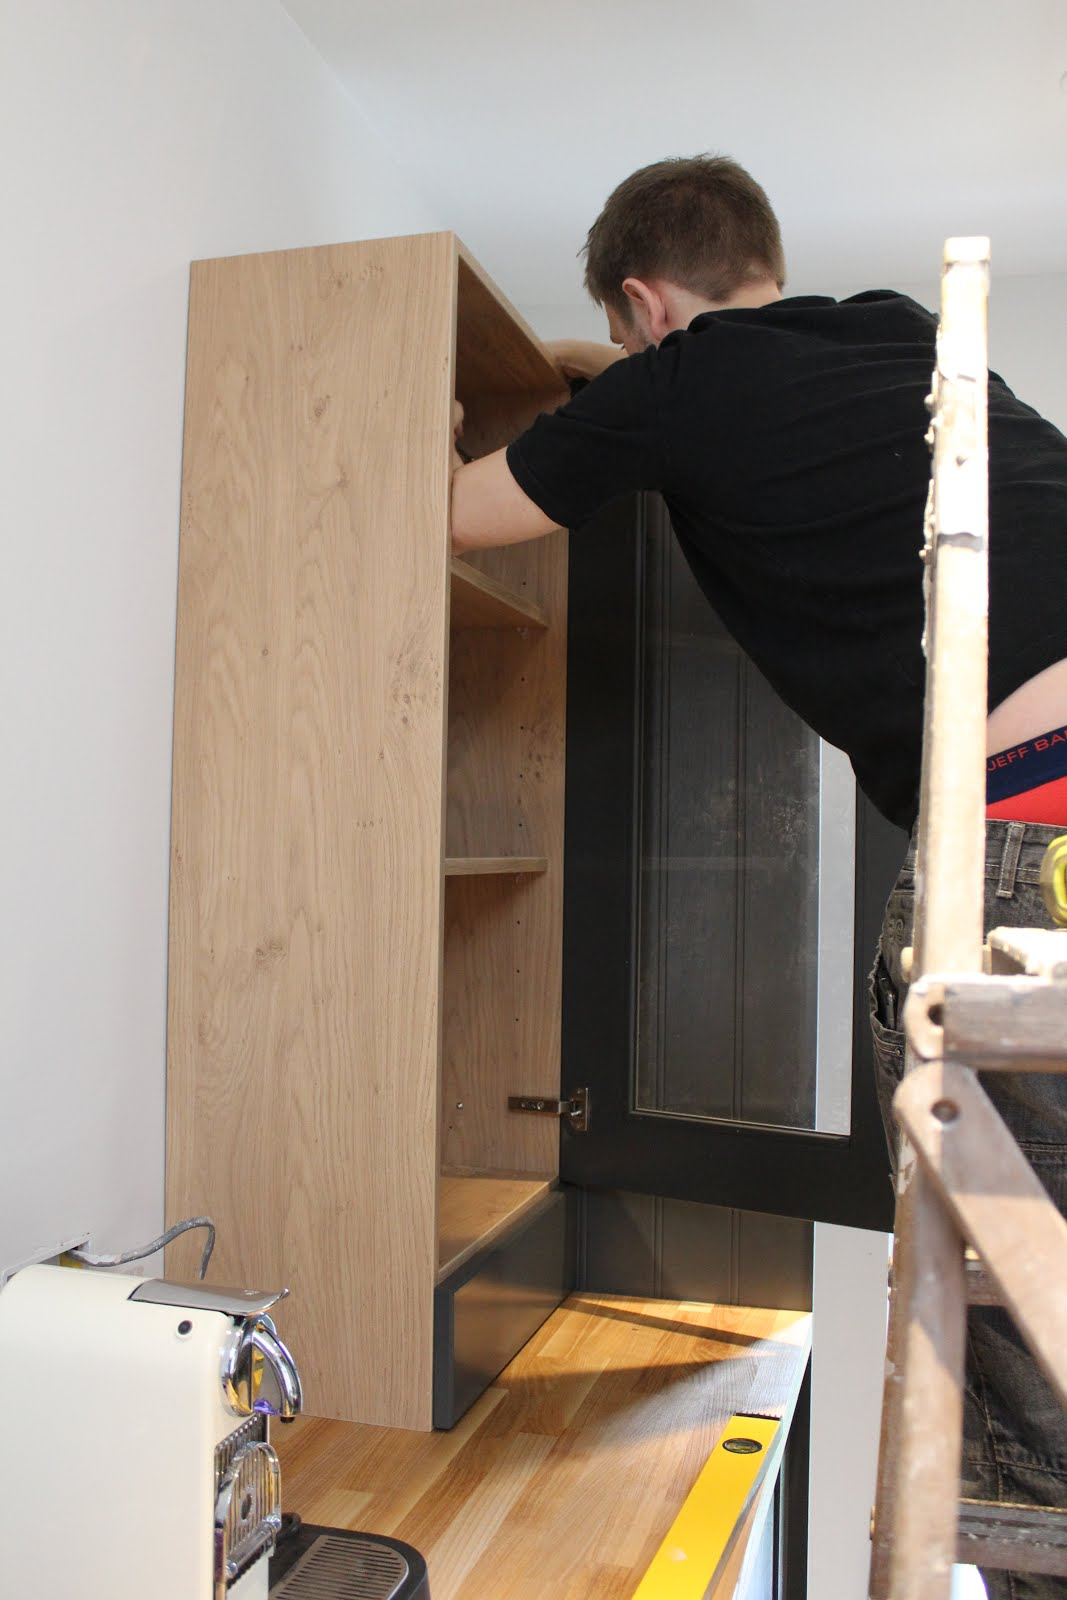 How to fit a wall dresser unit